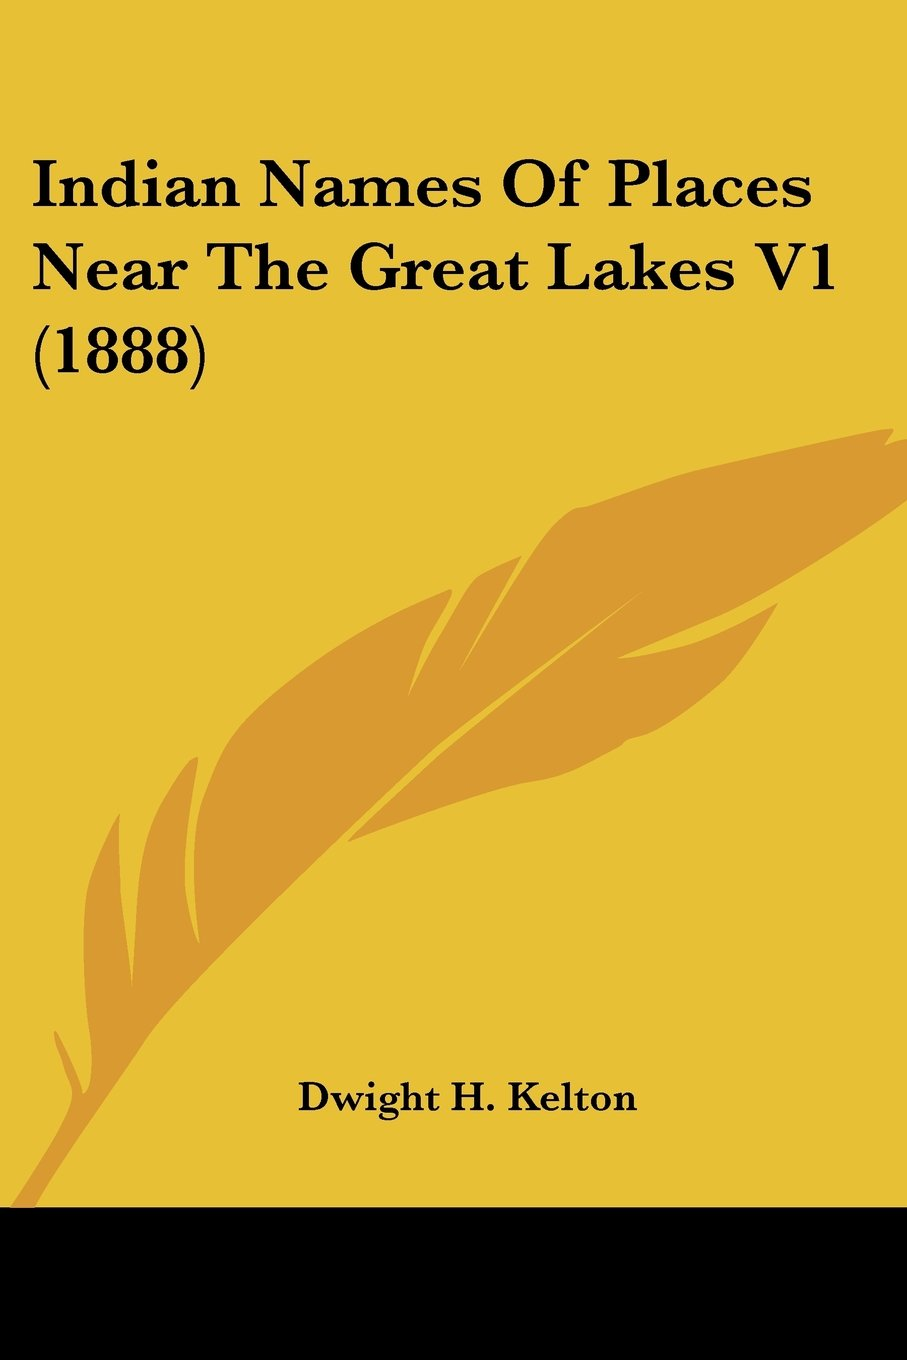 Indian Names Of Places Near The Great Lakes V1 1888